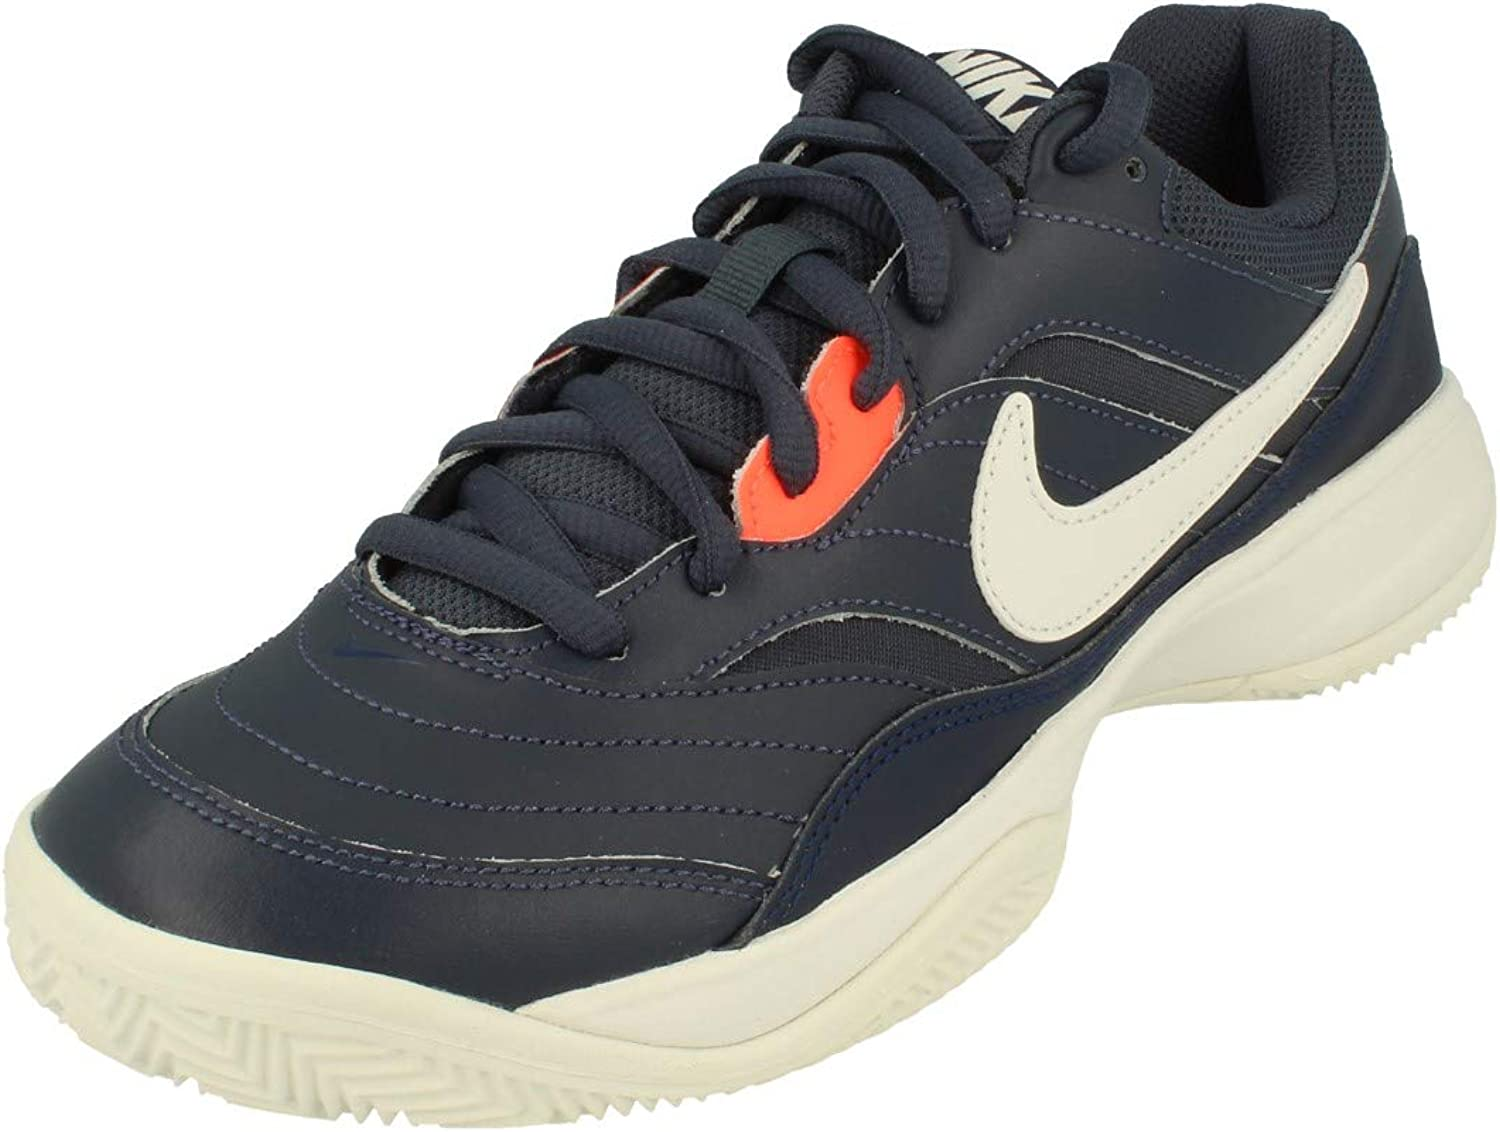 Nike Men's Court Lite Cly Low-Top Sneakers